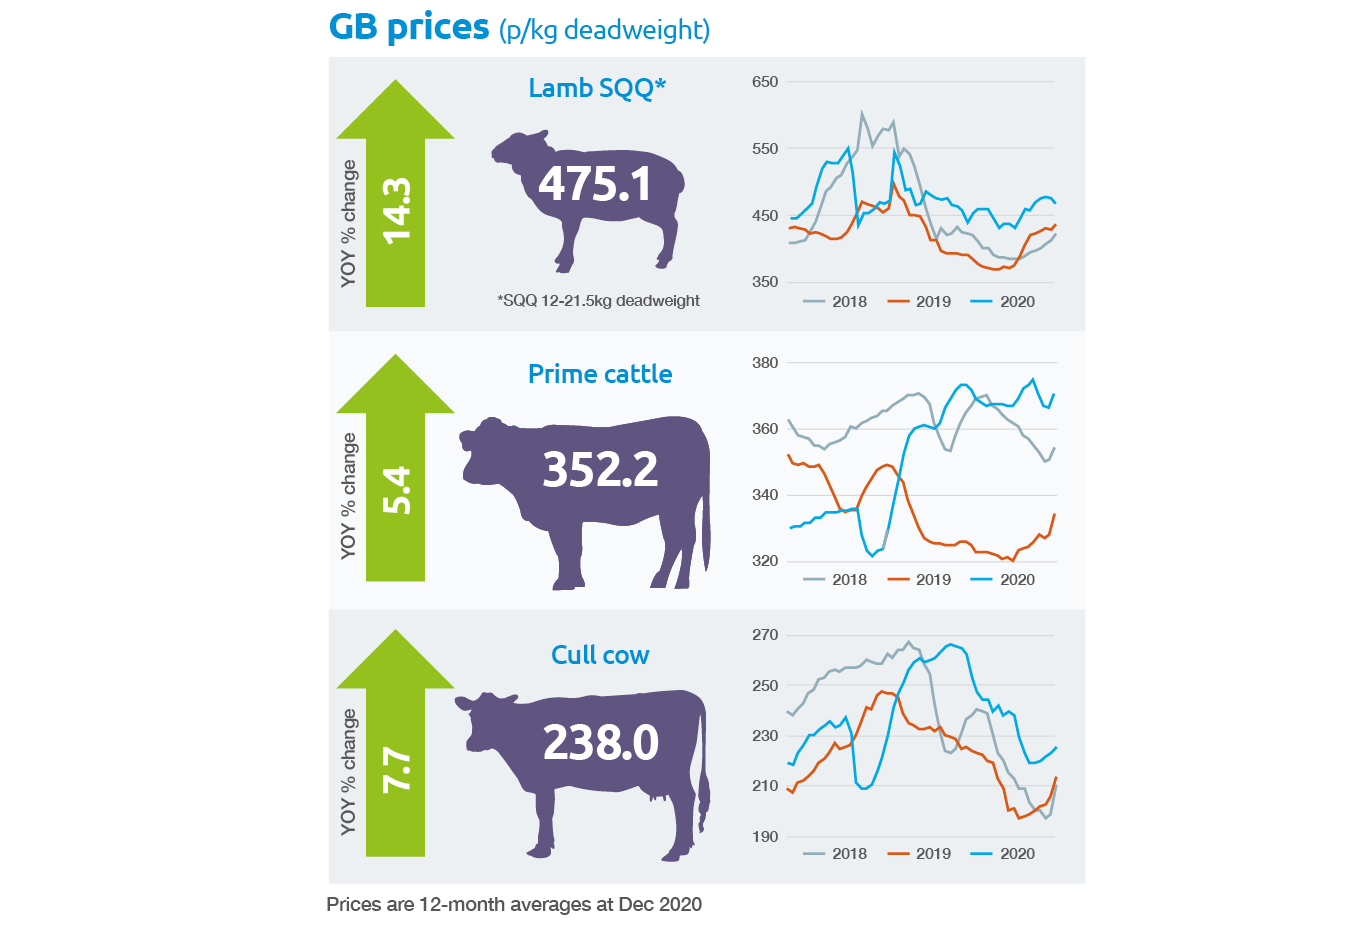 Beef and lamb GB prices